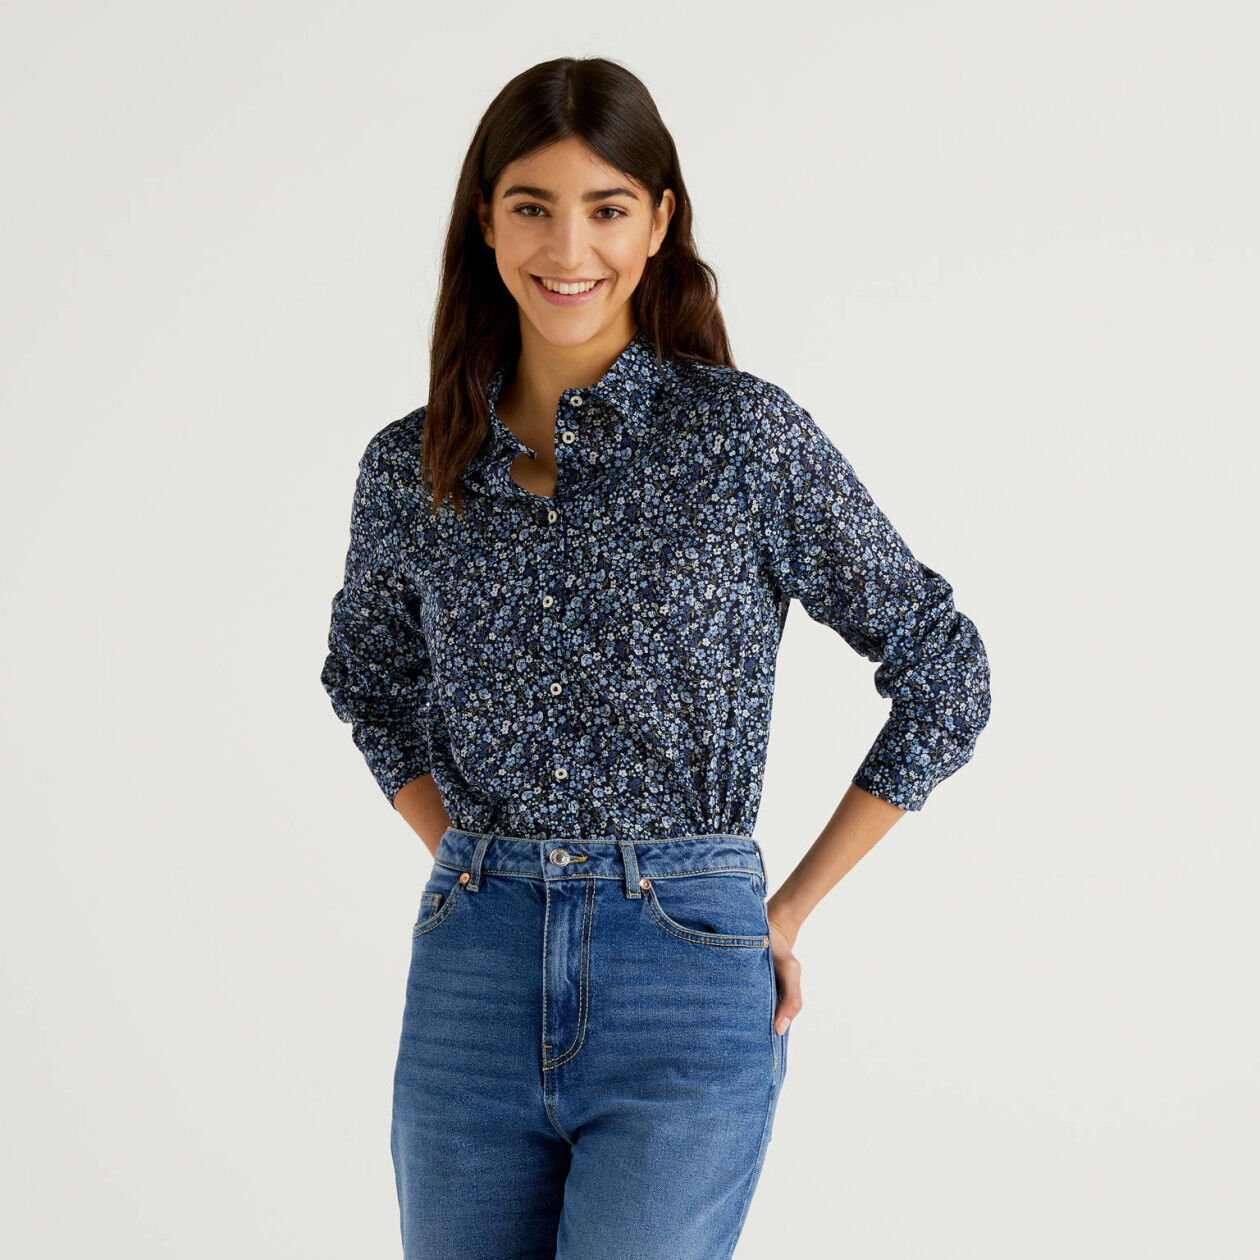 100% cotton blue shirt with floral print